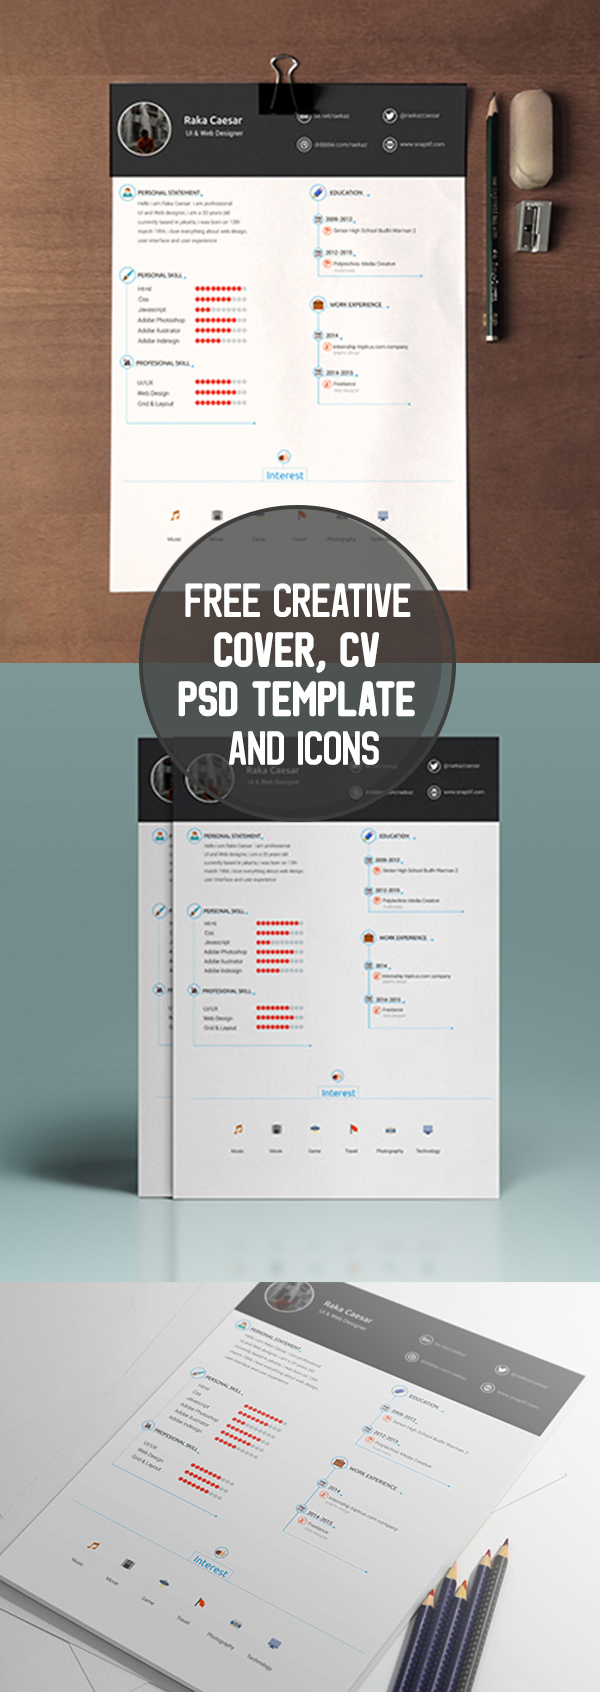 03 Free Creative Cover, CV PSD Template and Icons